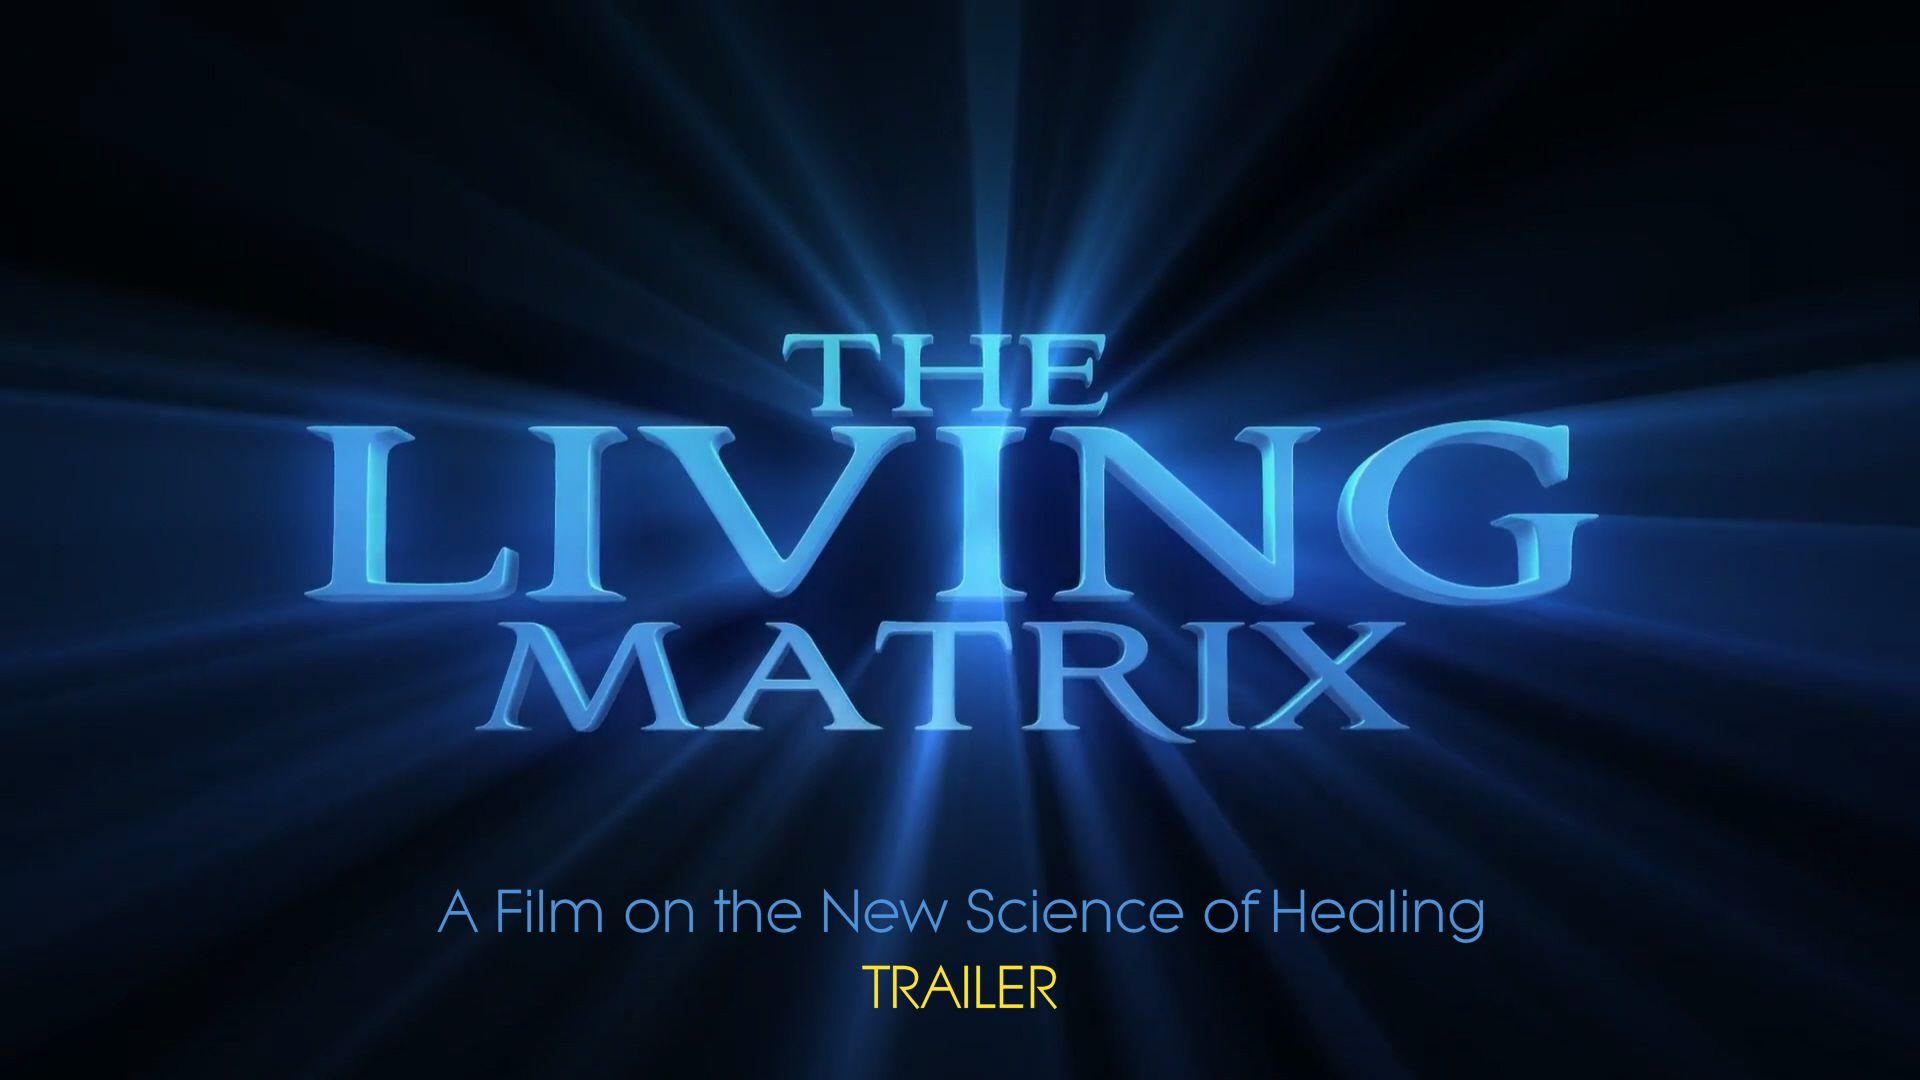 The living matrix movie trailer - a film about the science of information as medicine.